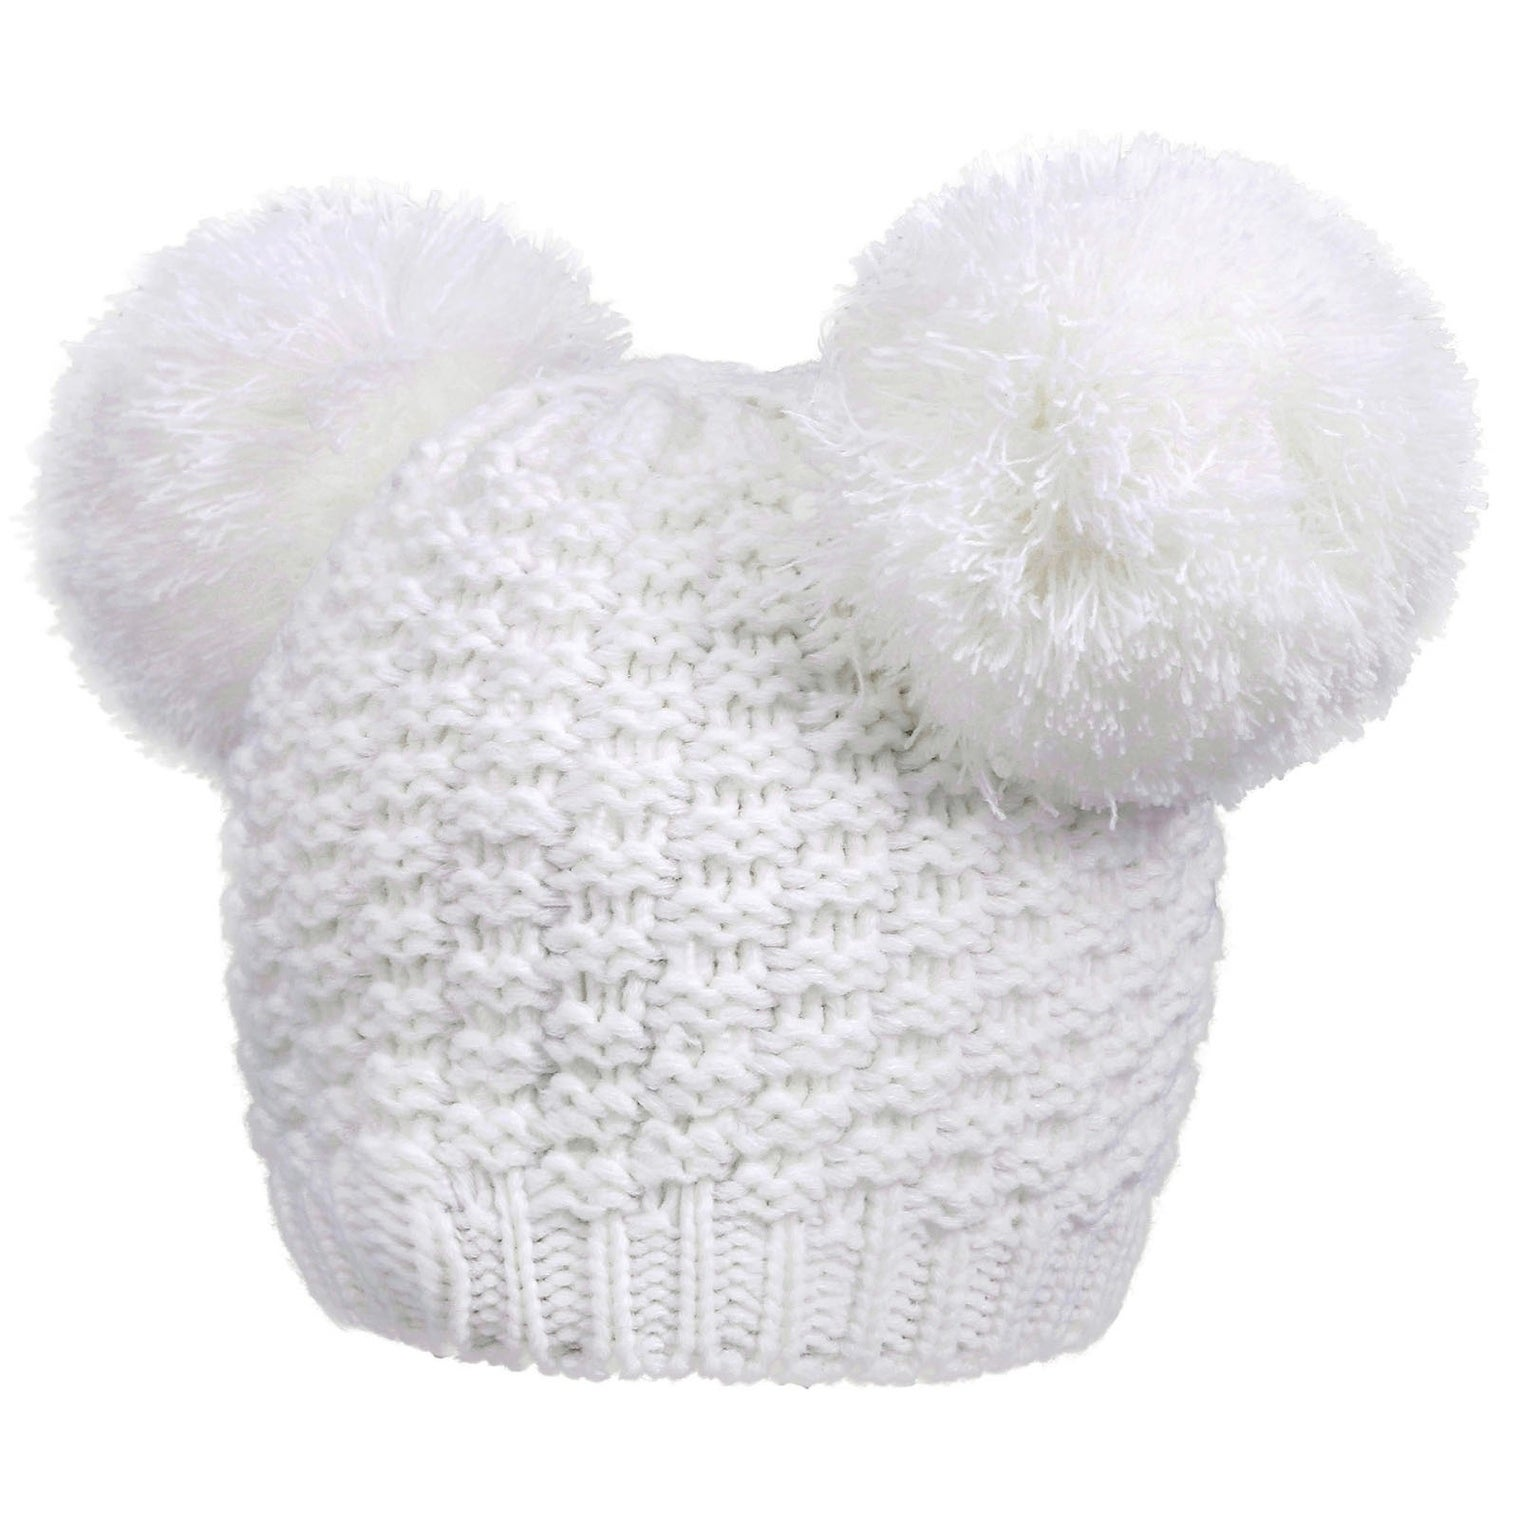 4cd1cf7a4d4 Shop Simplicity Women s Cute Knit Fuzzy Pompom Winter Beanie Hat - Free  Shipping On Orders Over  45 - Overstock - 17638924